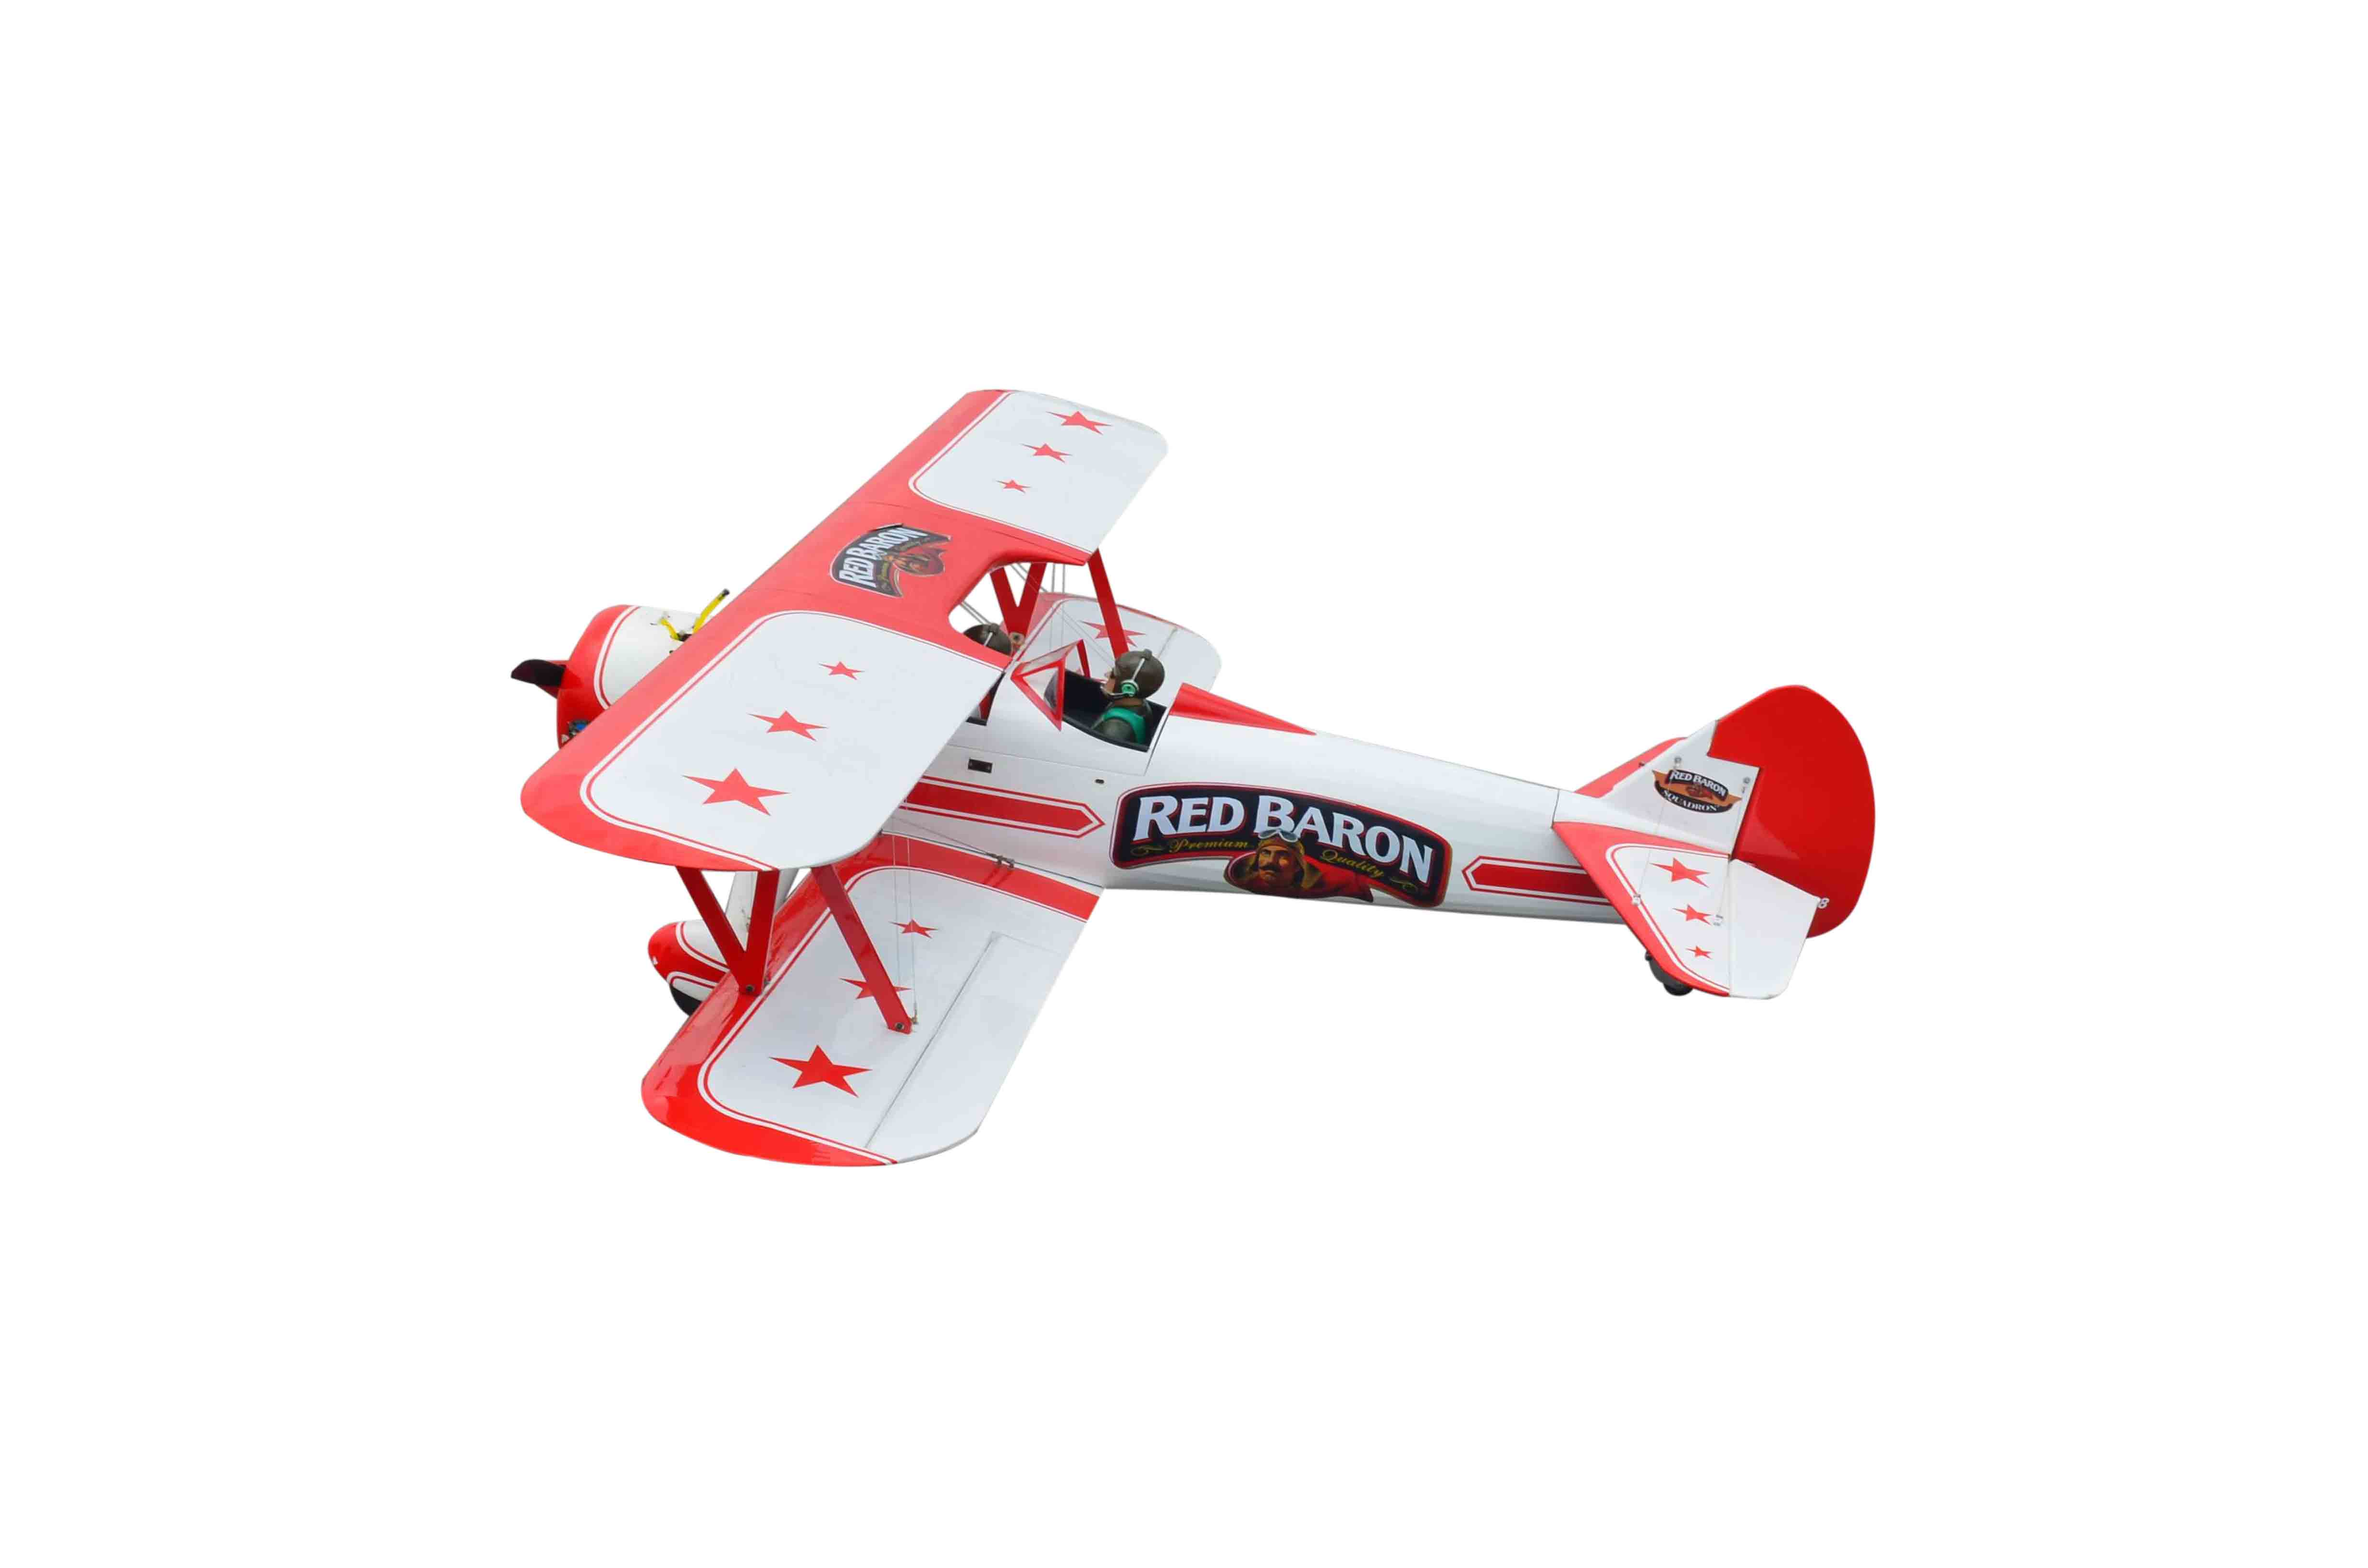 Red Baron Pizza Squadrons Stearman Seagull Models